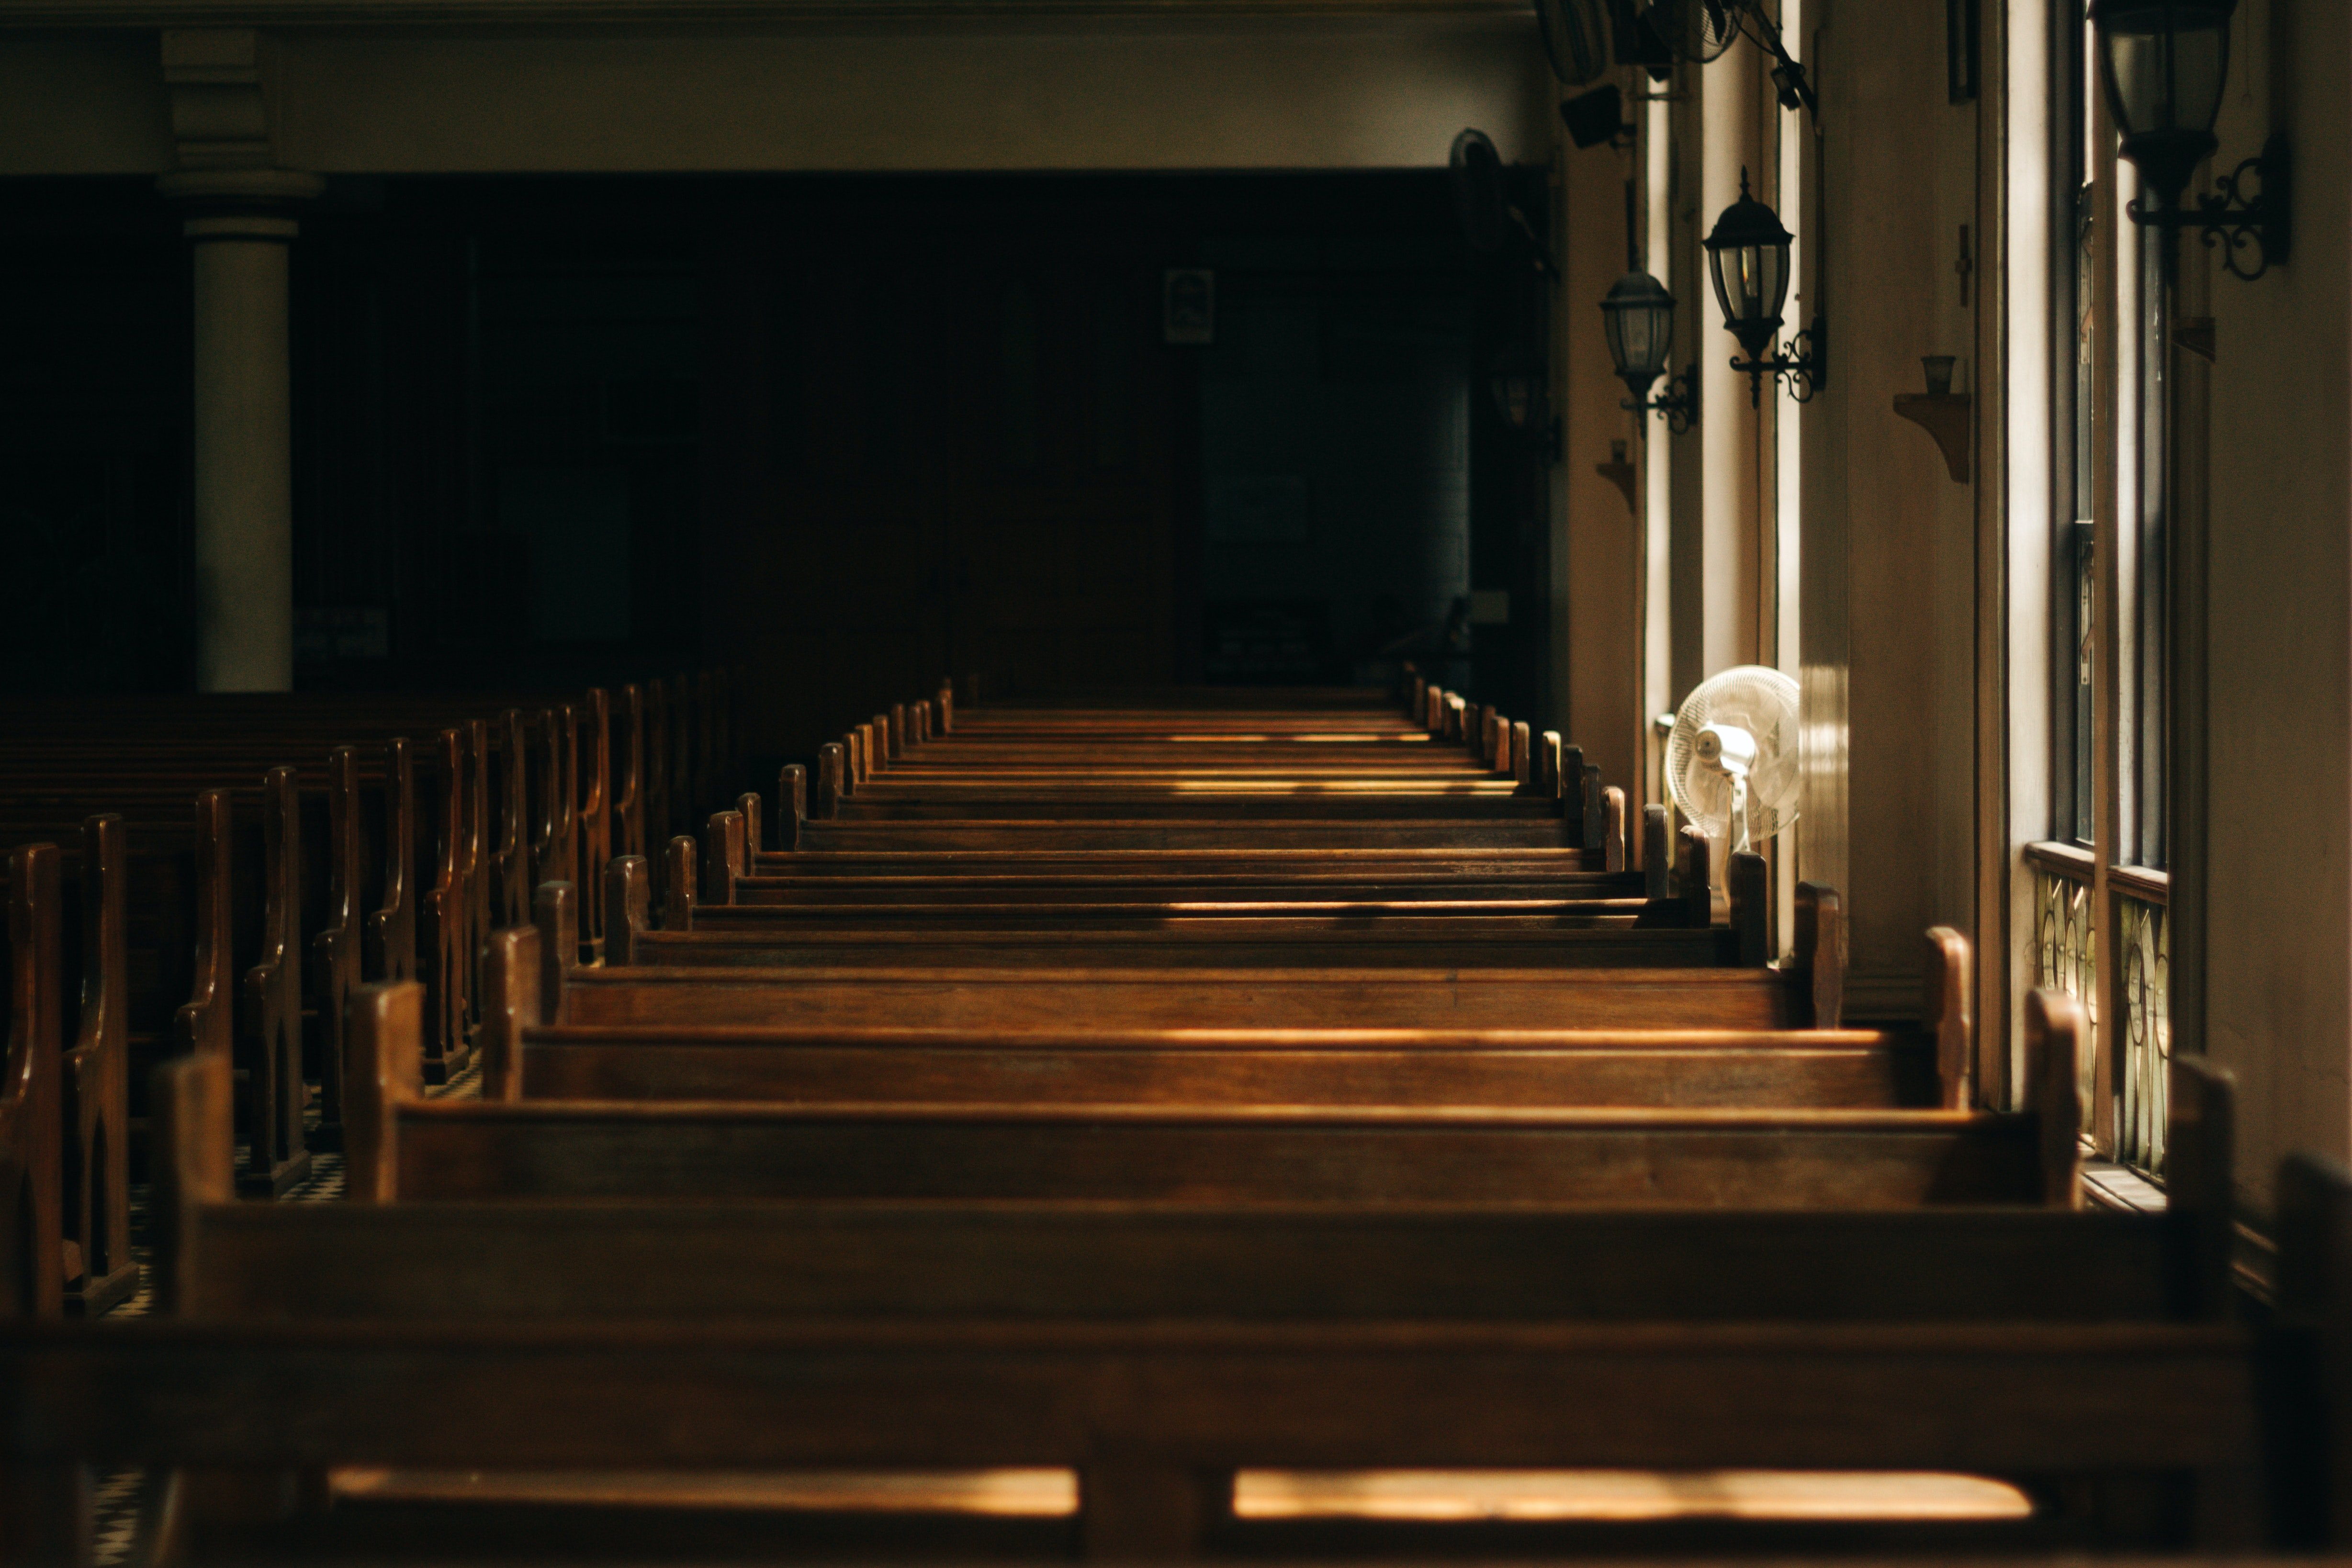 Laura started going to church   Source: Pexels